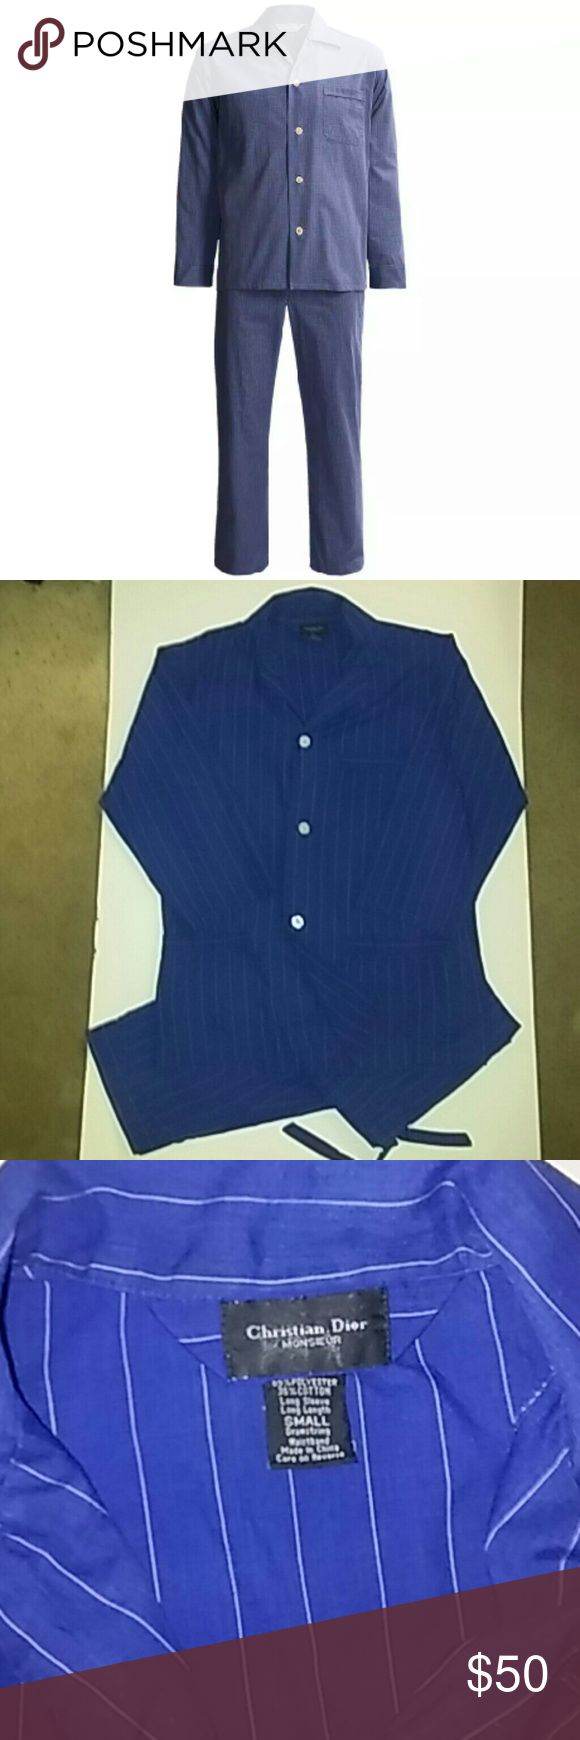 Christian Dior monsieur men's pjs Vintage Christian Dior monsieur long sleeve pajama set. dark blue with thin white pinstripes. 1 left breast pocket and two front pockets. size small. 65% polyester 35% cotton. top is button up up and pants are drawstring and have buttons. In mint condition. Gucci Underwear & Socks